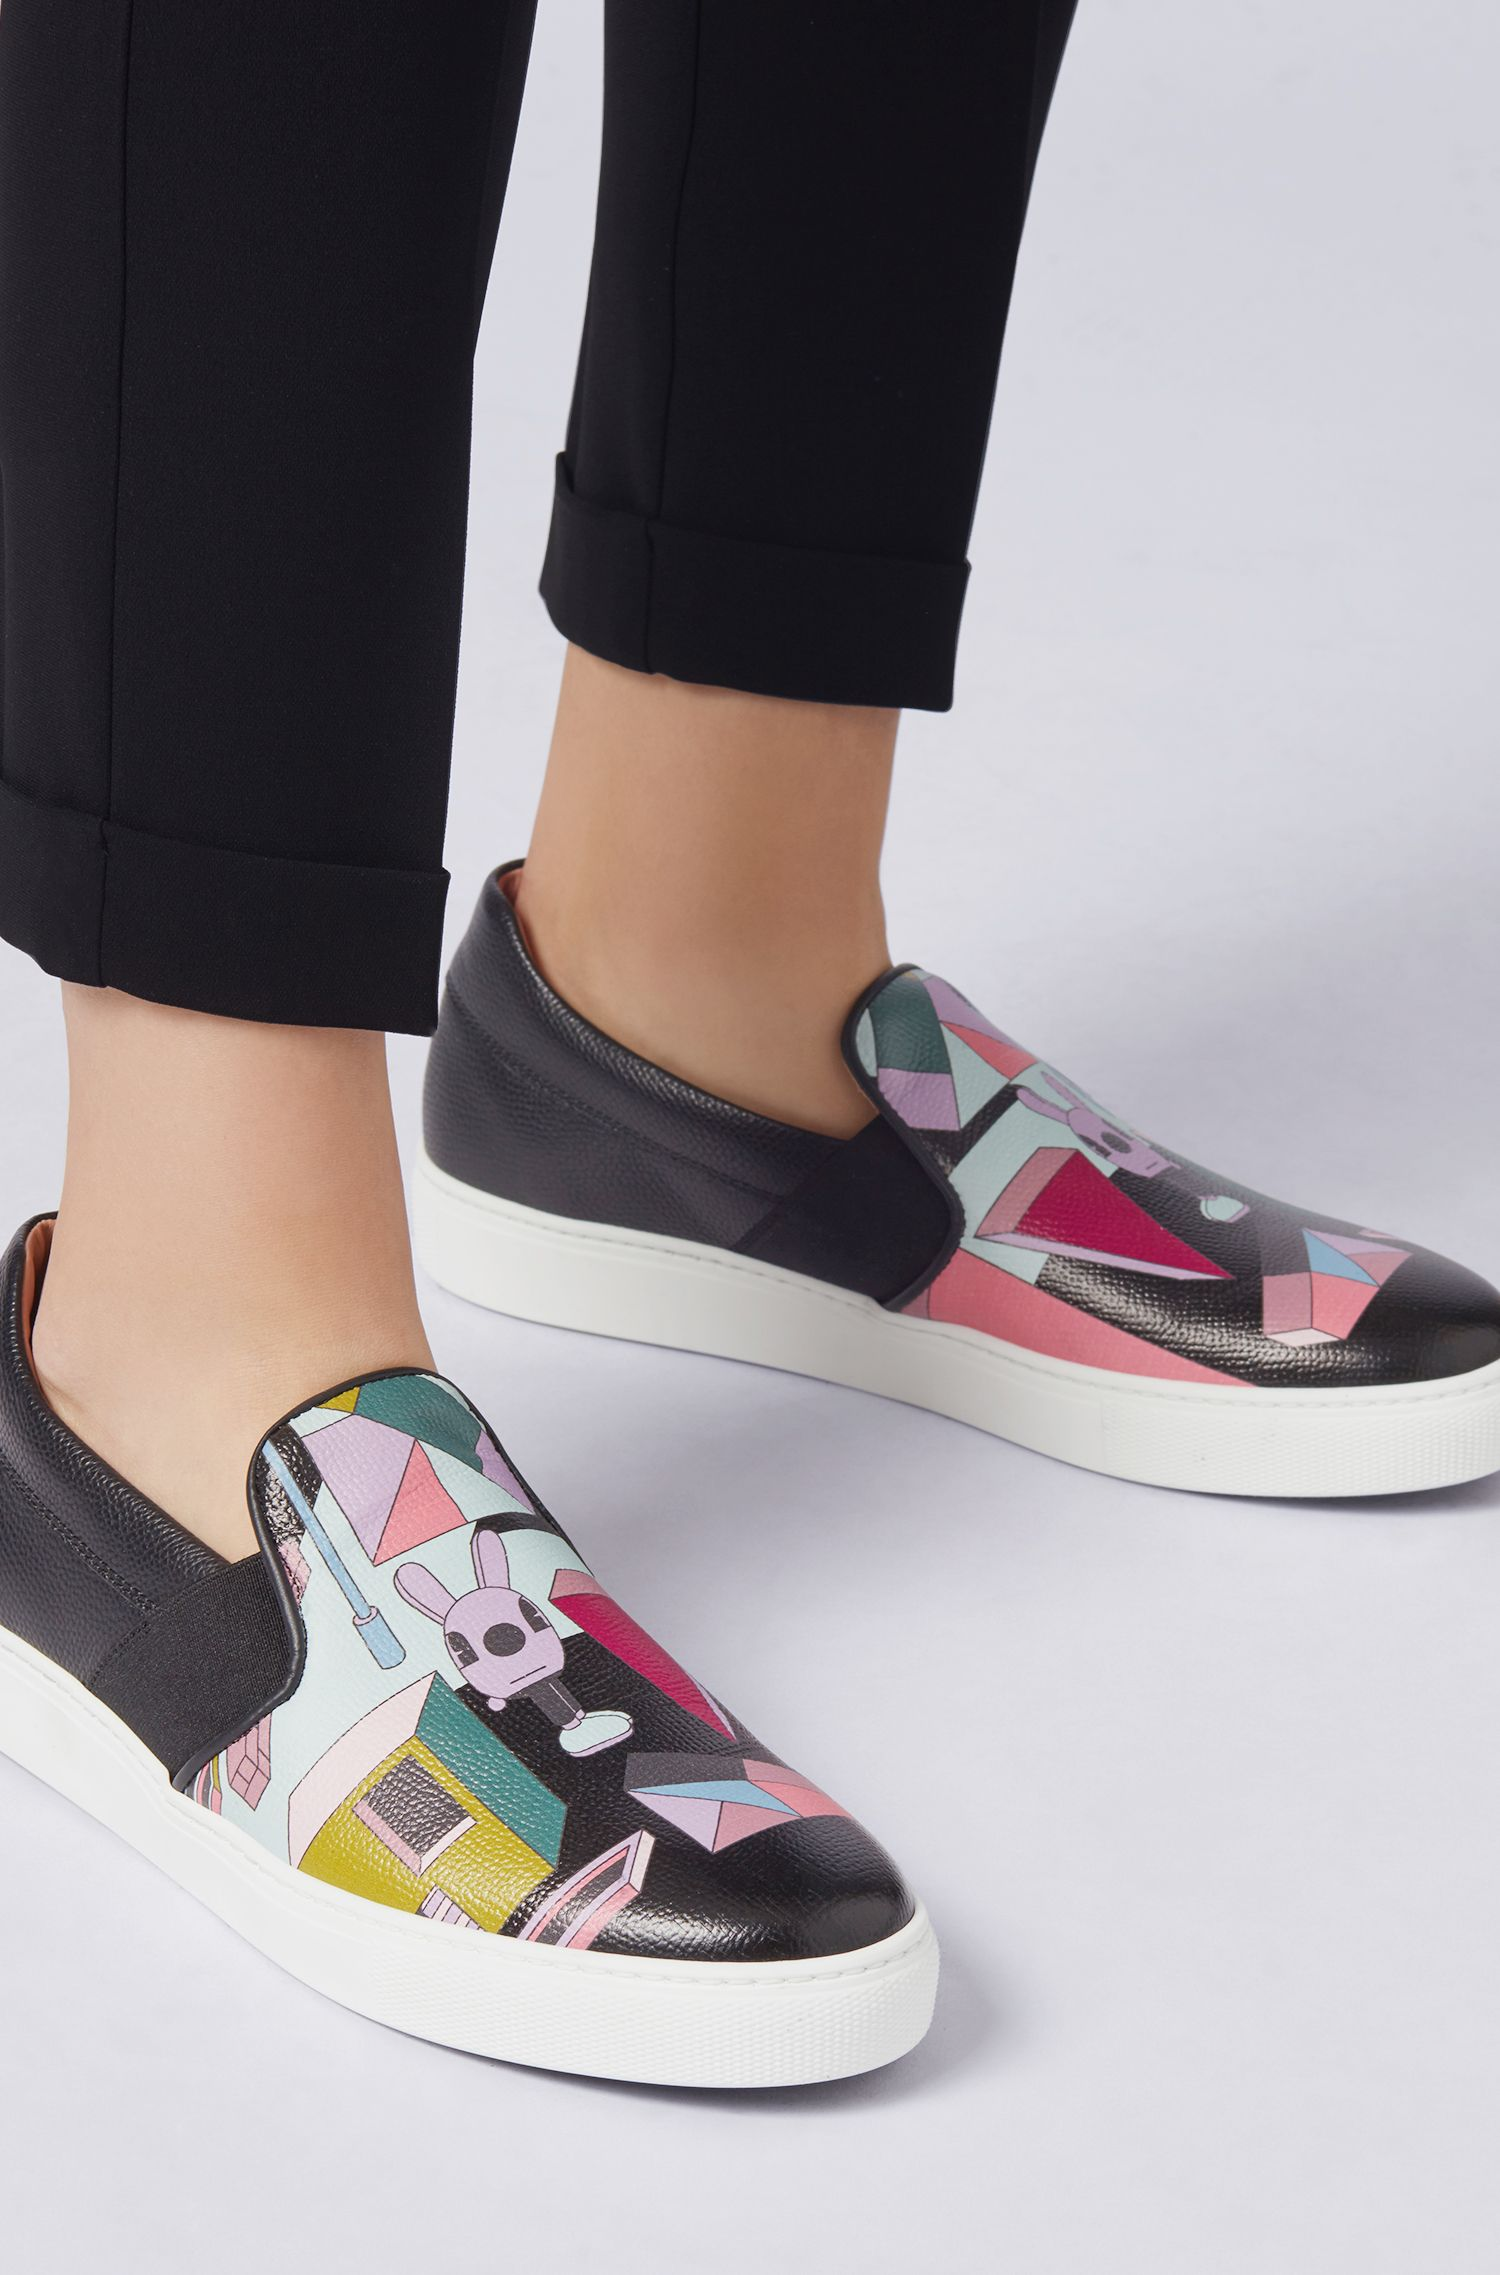 Limited-edition slip-on trainers with Jeremyville landscape print, Patterned